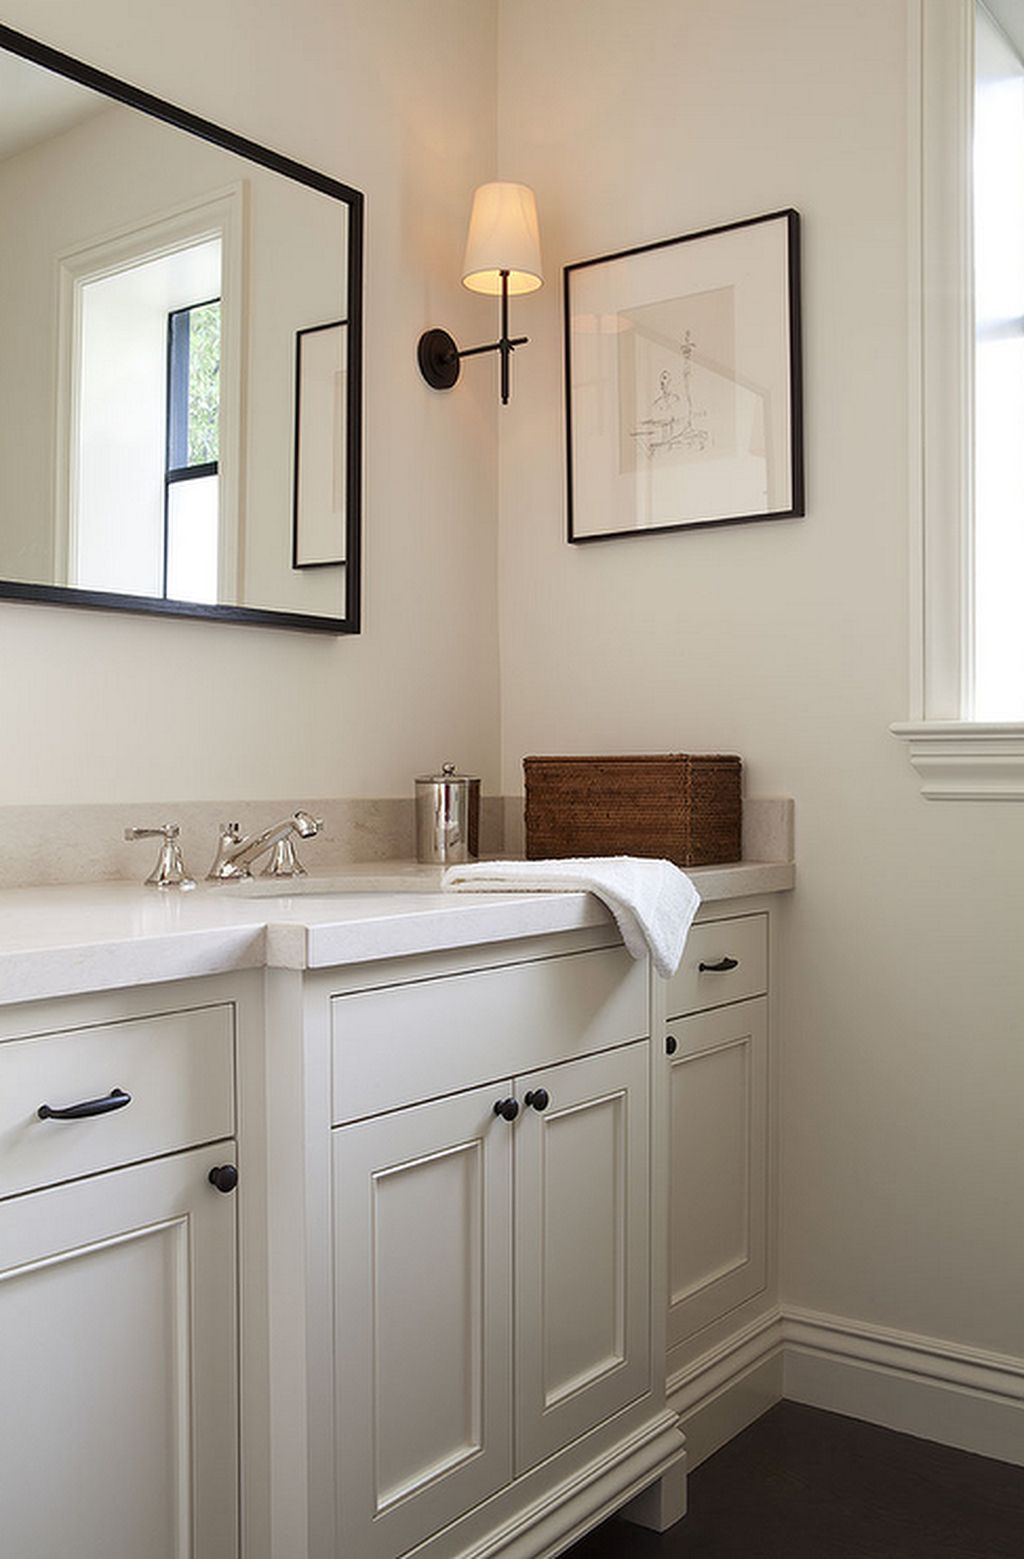 53 Most Fabulous Traditional Style Bathroom Designs Ever: 34 Perfect Farmhouse Bathroom Vanity Ideas To Maximize